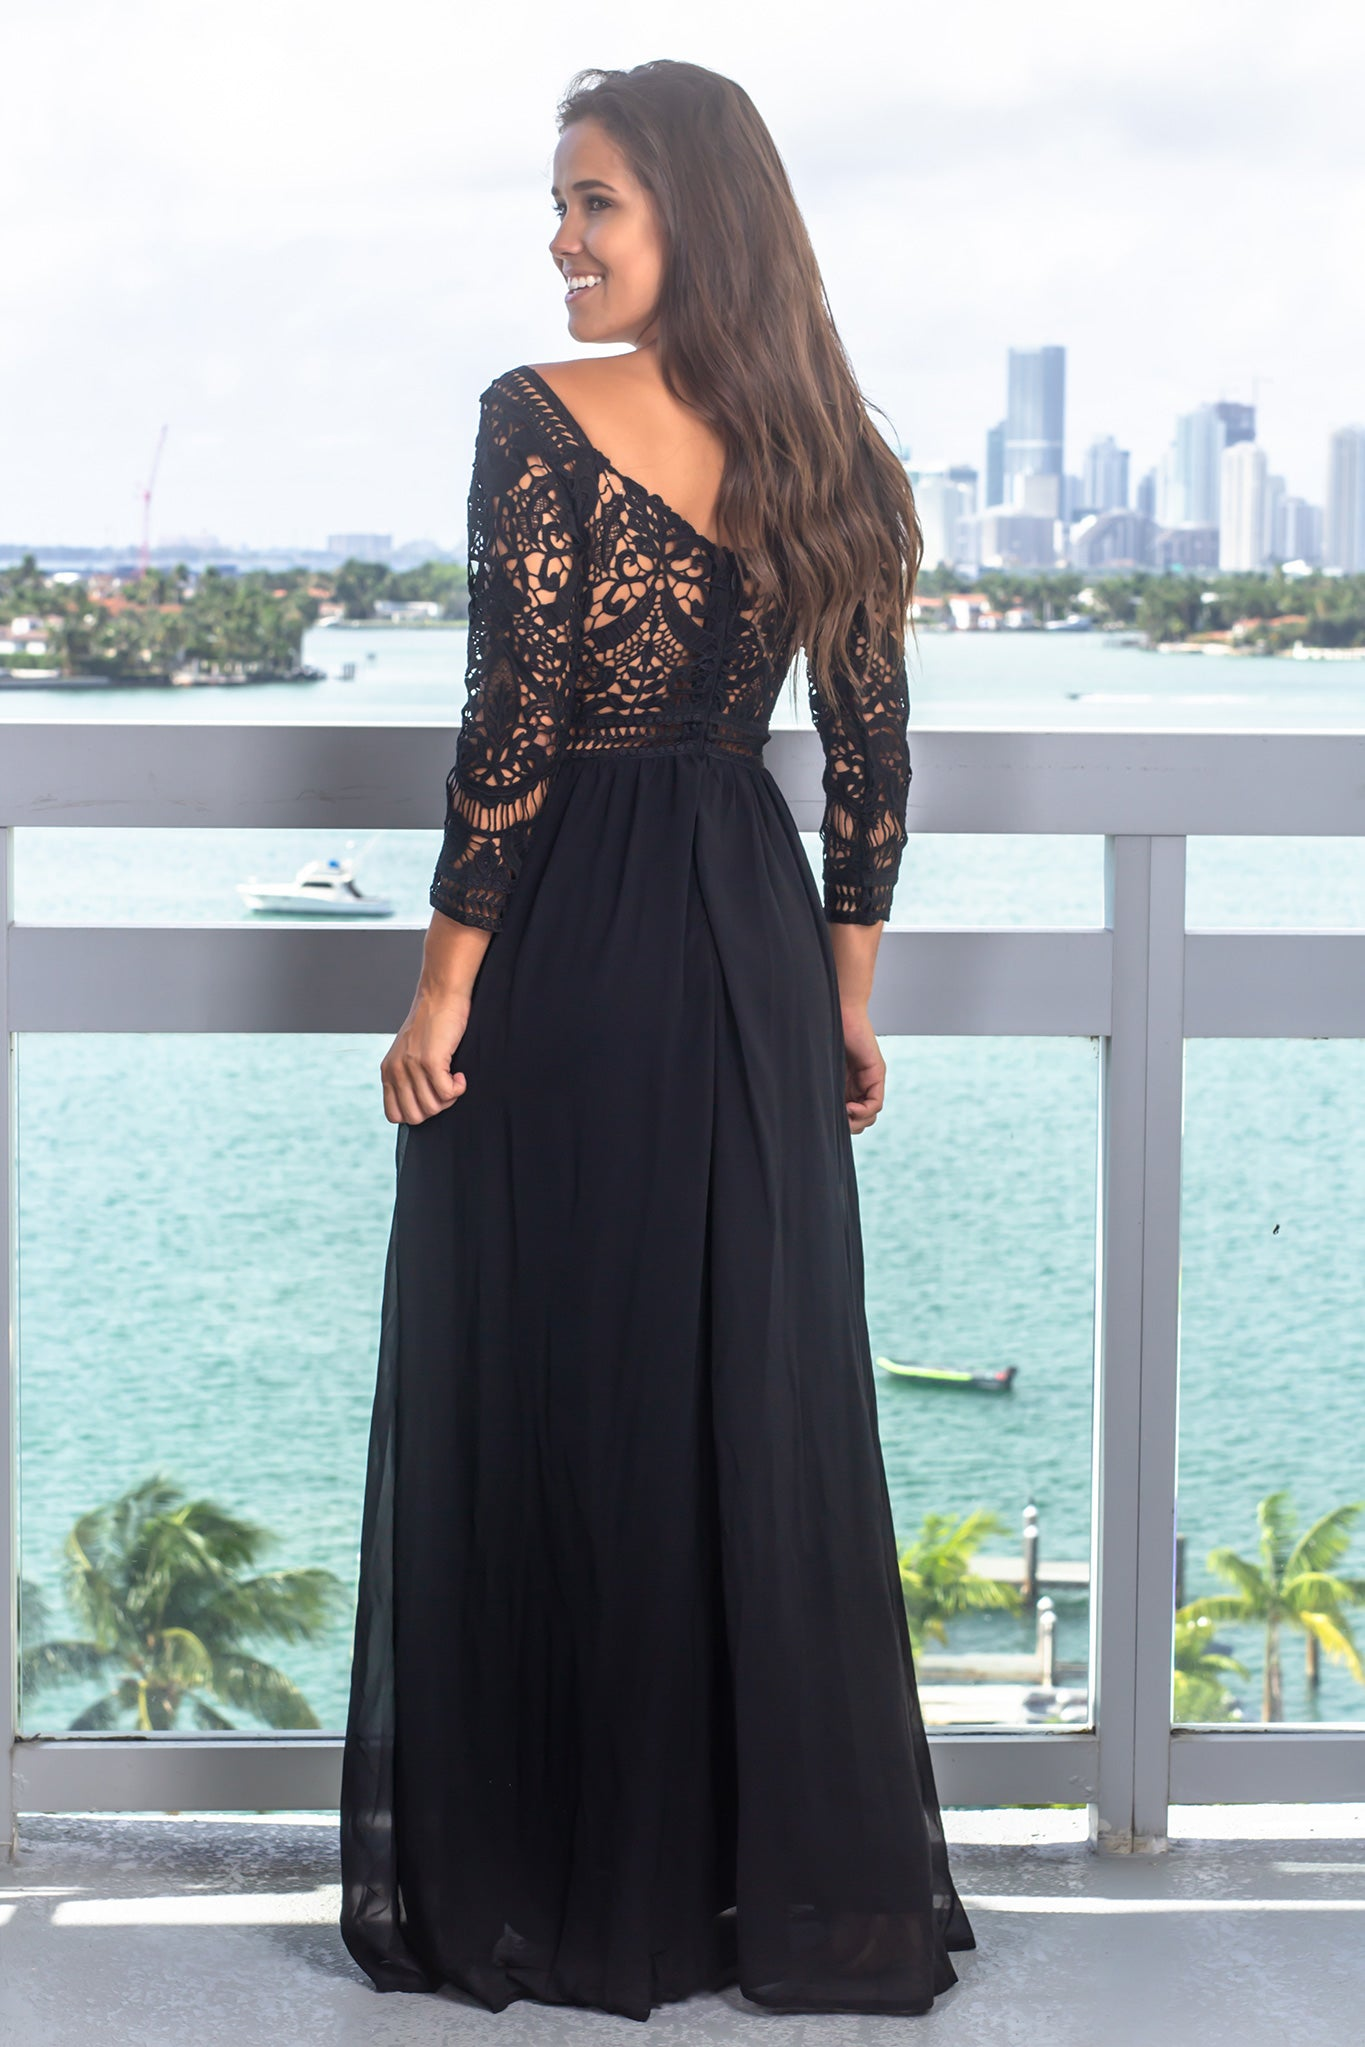 Black Crochet Maxi Dress with 3/4 Sleeves